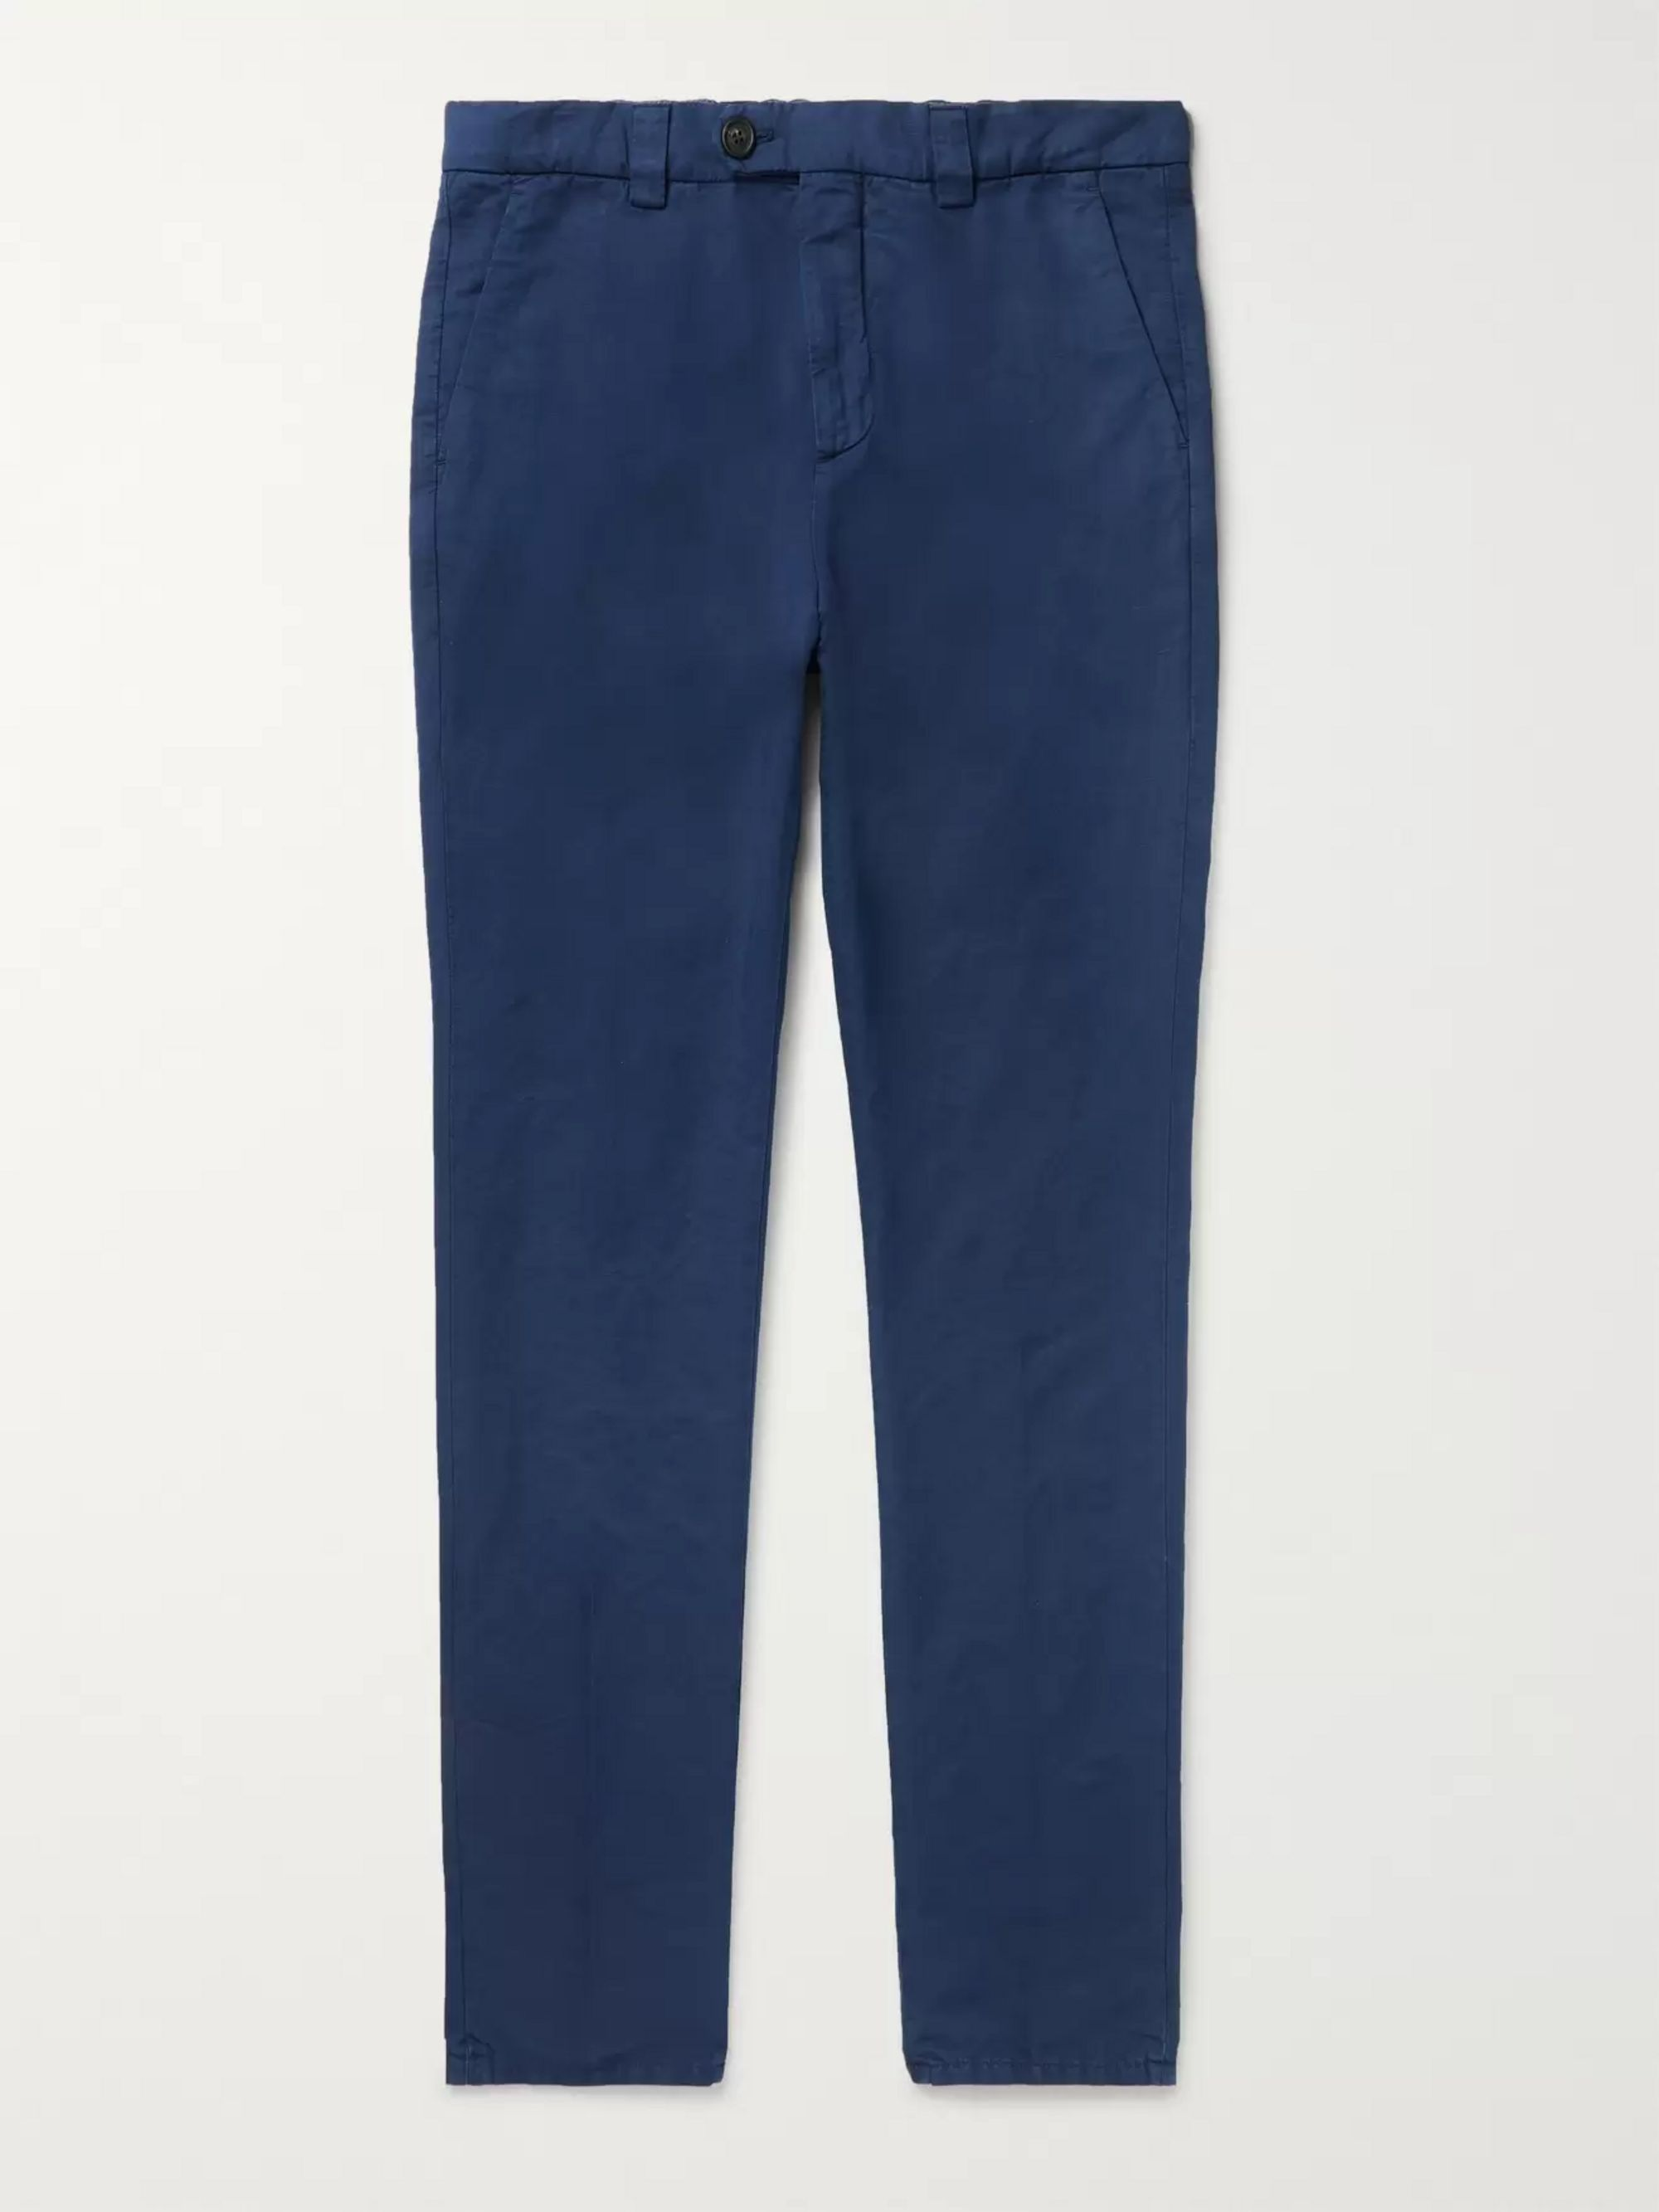 Brunello Cucinelli Navy Tapered Linen and Cotton-Blend Trousers